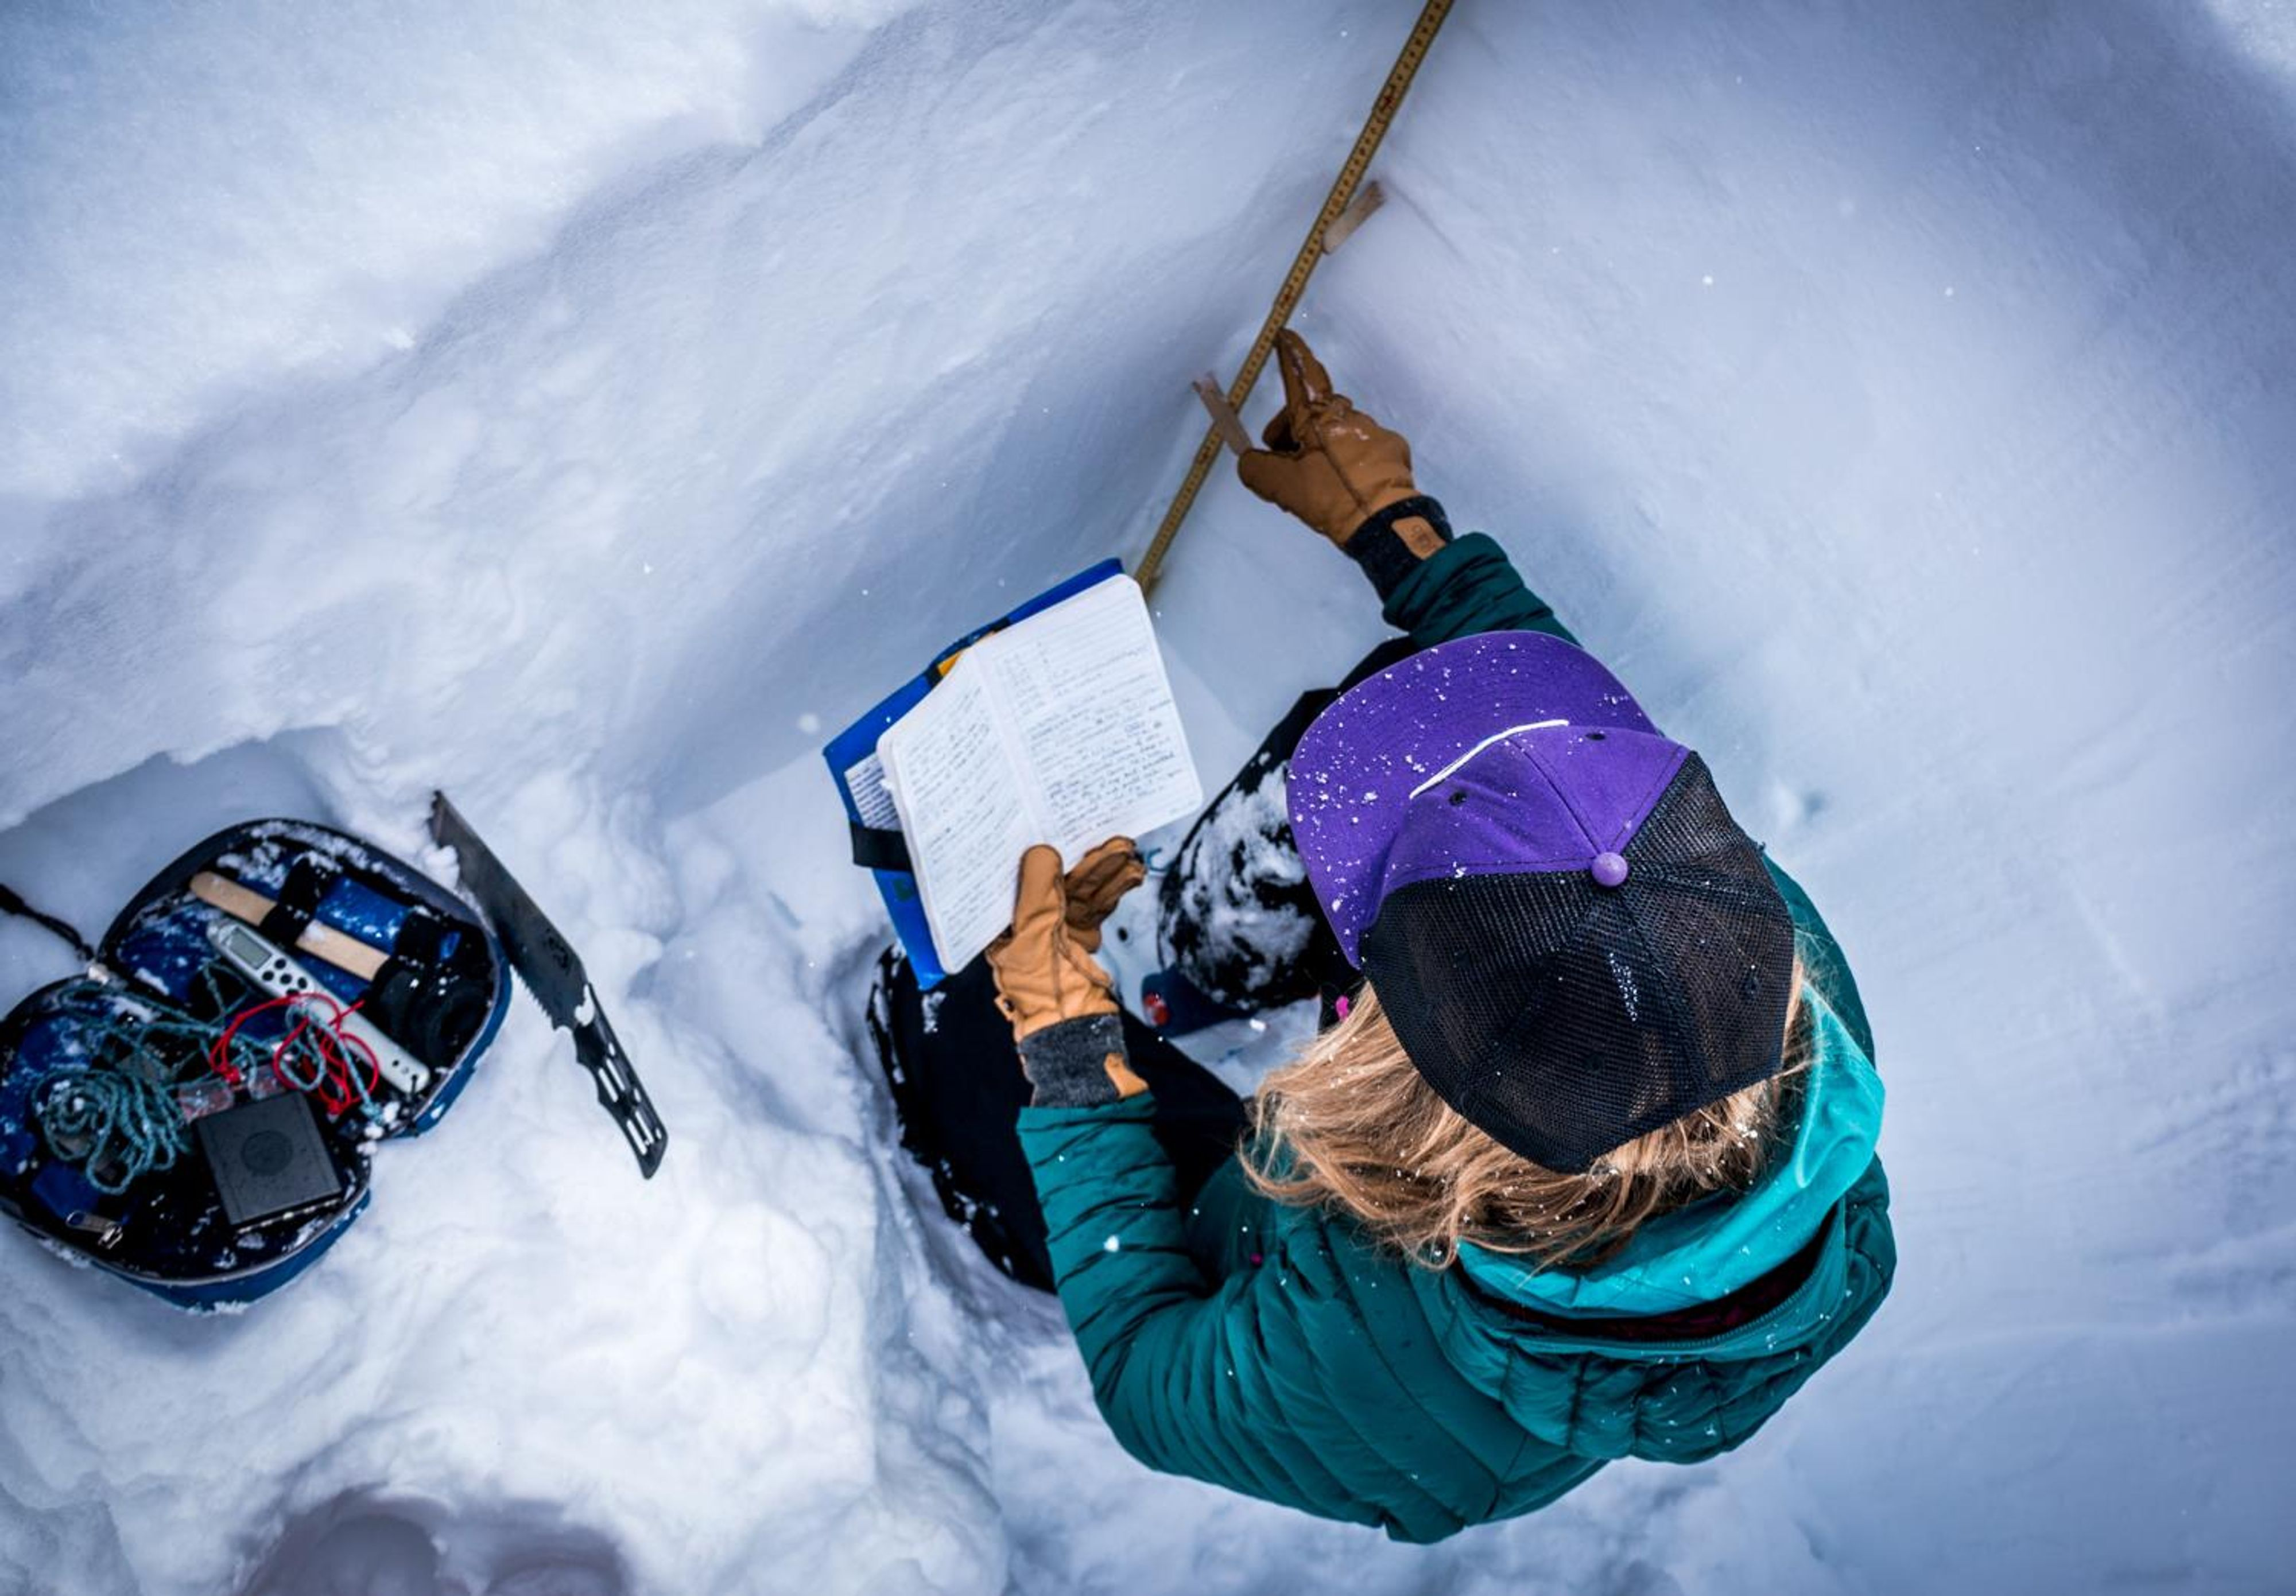 An avalanche professional digs a snow pit.